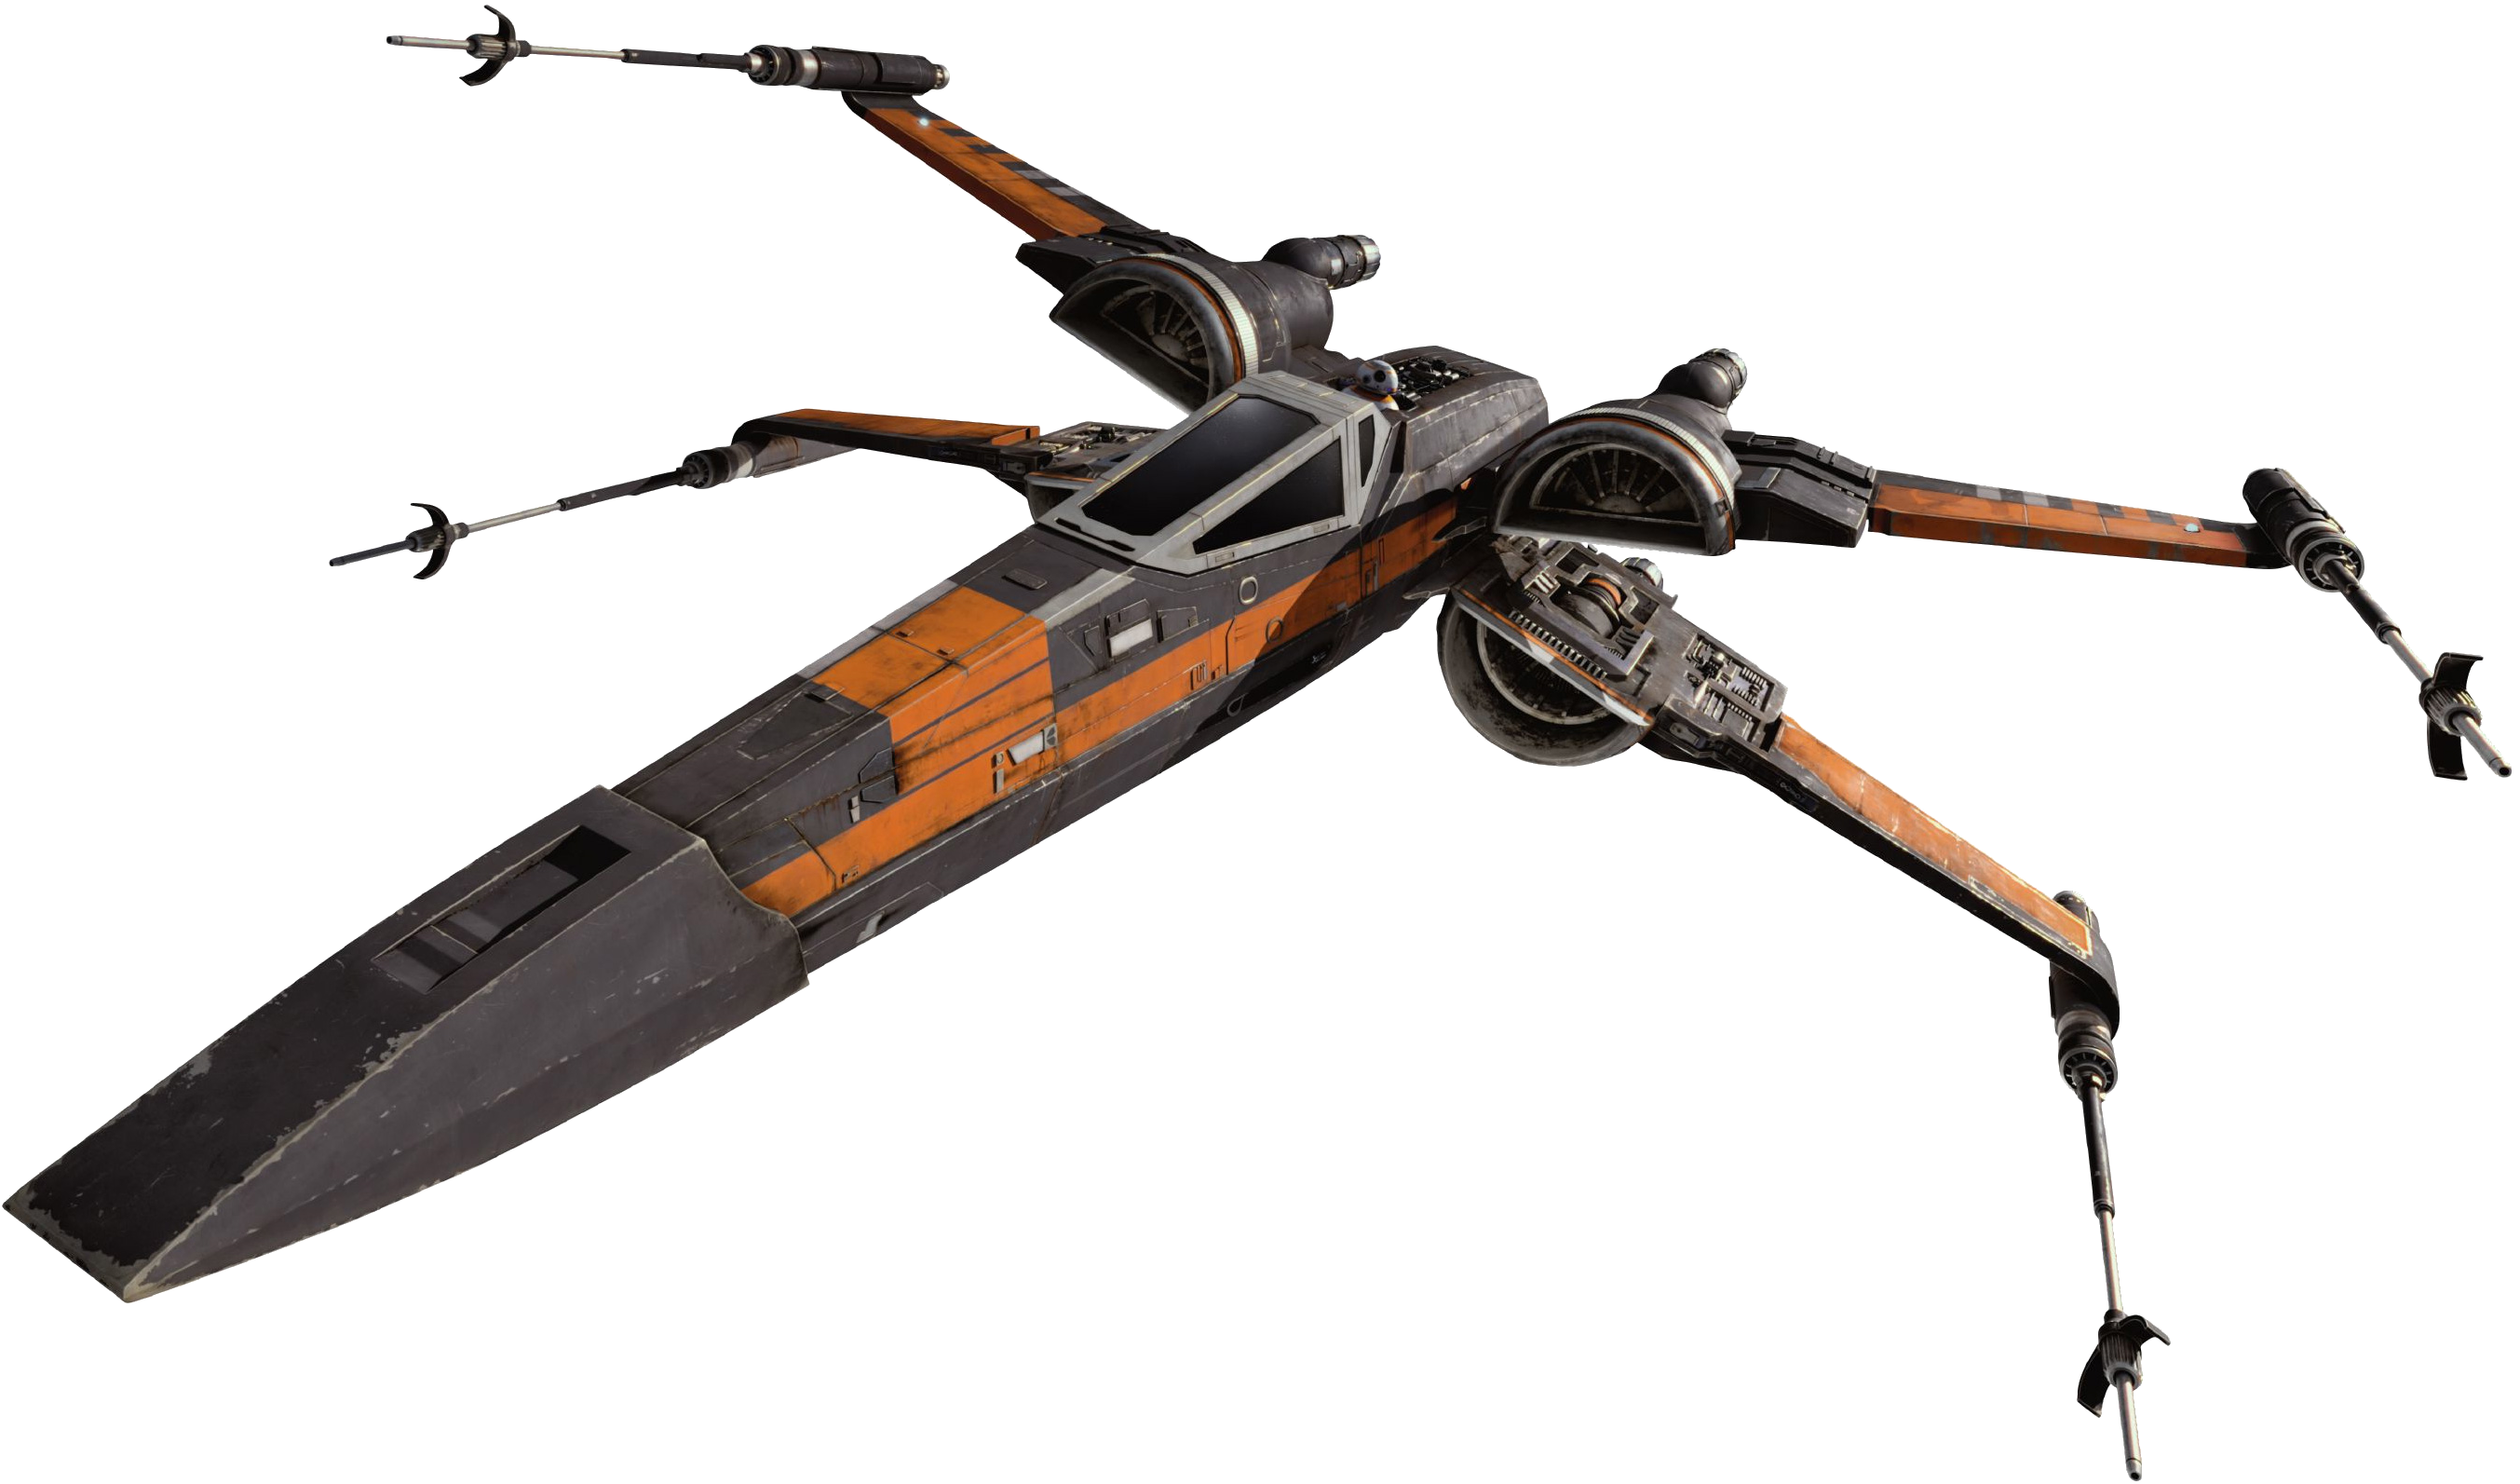 Pin By Tahlsolo On A Long Time Ago In A Galaxy Far Far Away Wings Png Sci Fi Sci Fi Spaceship